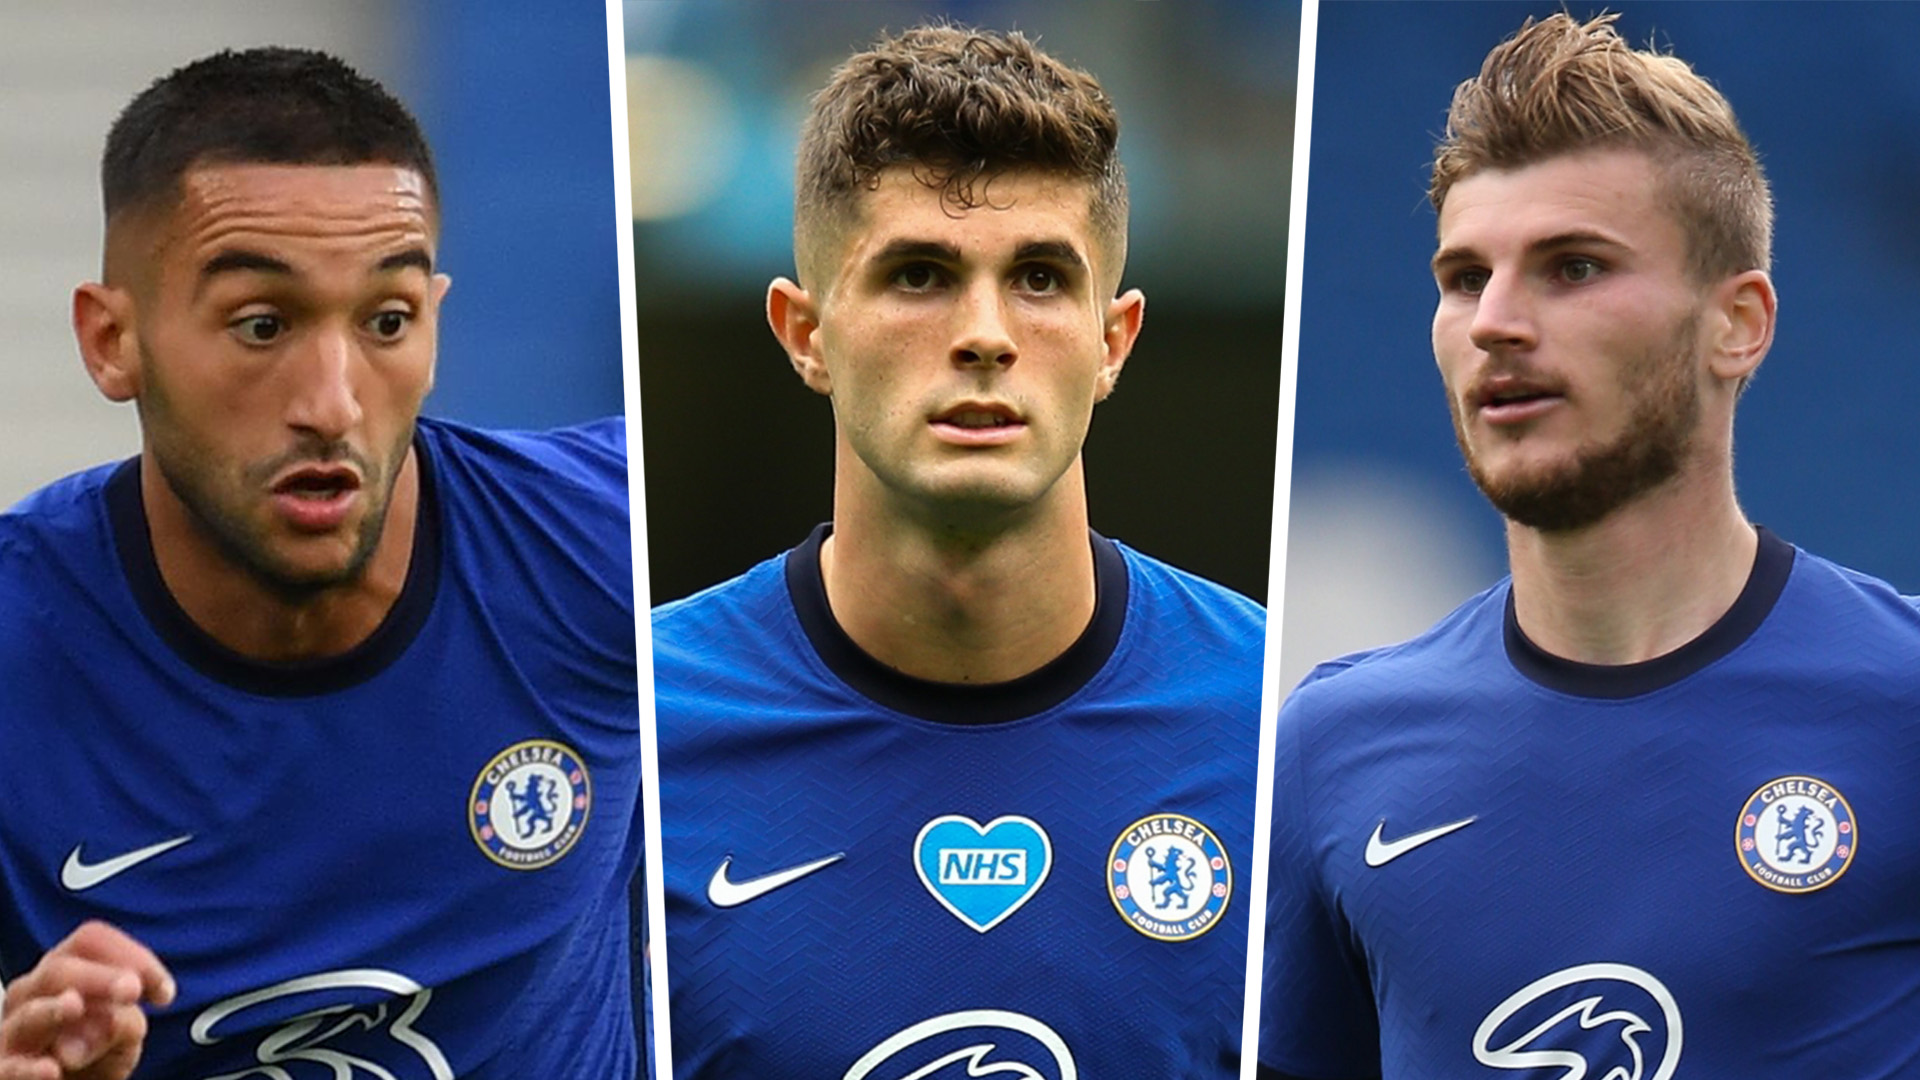 'Fully fit Pulisic & Ziyech could force Werner out' – Chelsea striker faces axe when Blues at full strength, says Schwarzer